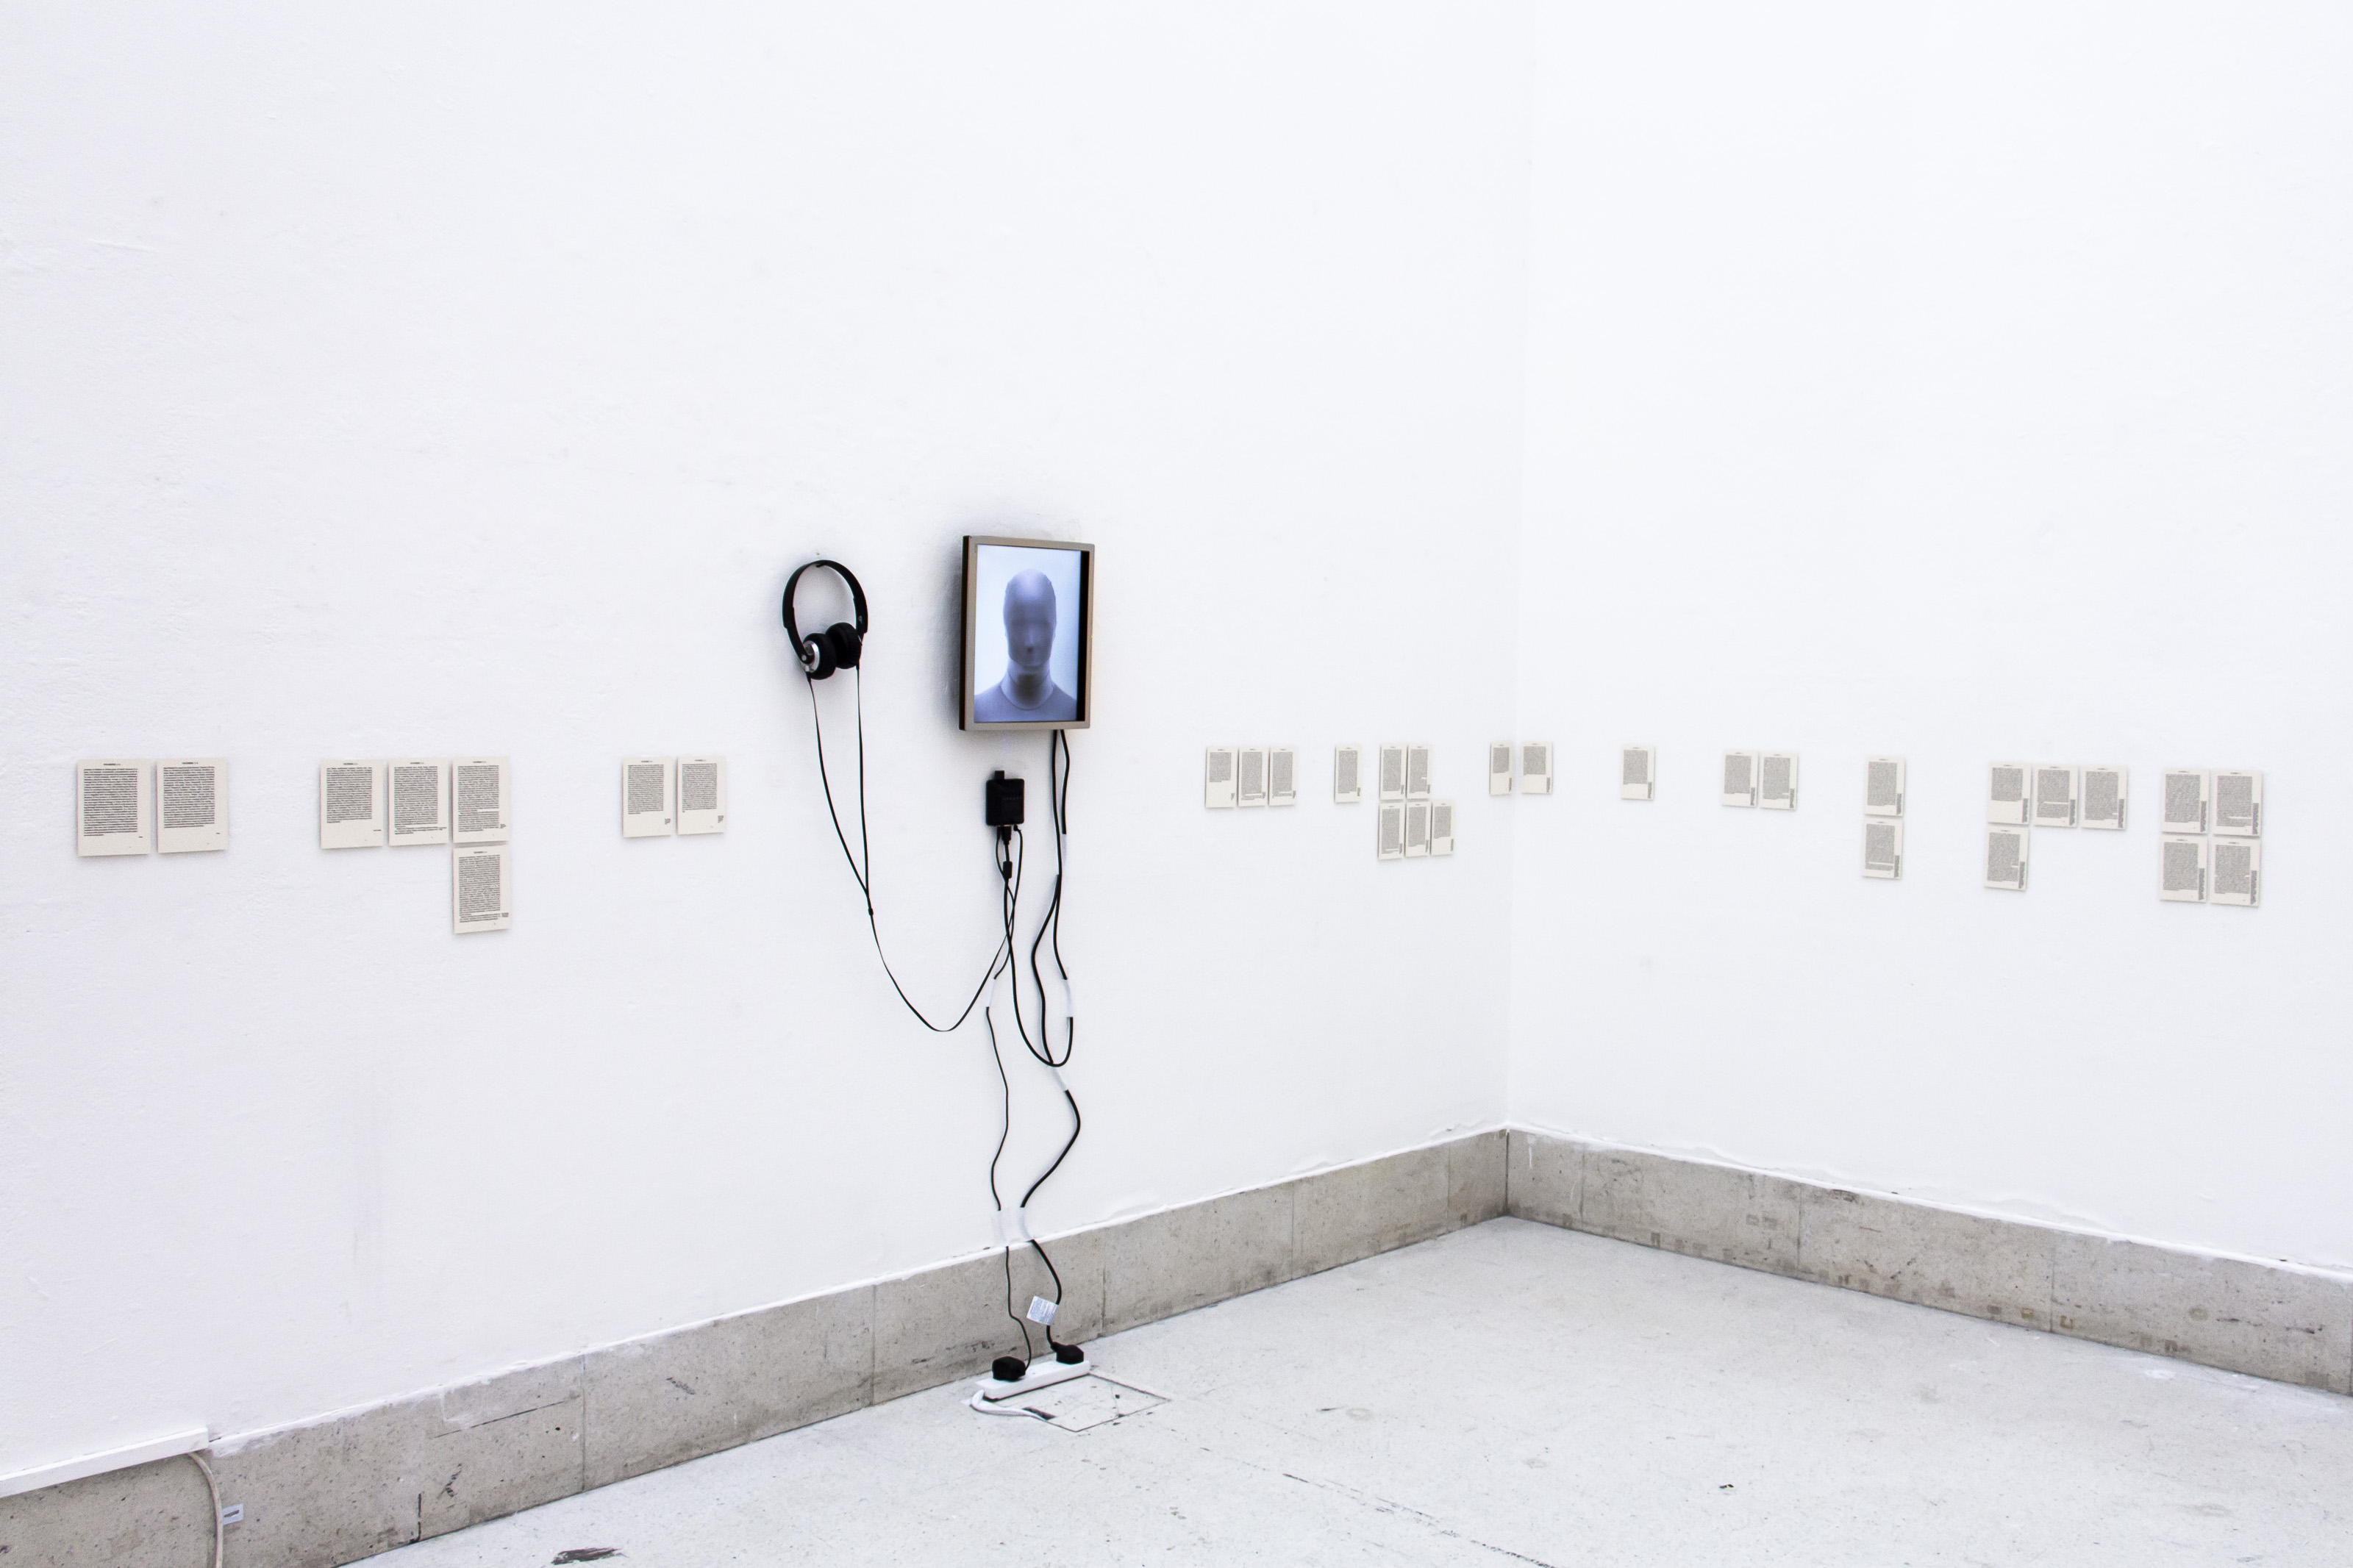 """Johanna Flato, """"Screen Test Portrait Mode"""" installation view, """"Sirens in the Blank,"""" Royal College of Art, London, 2018"""